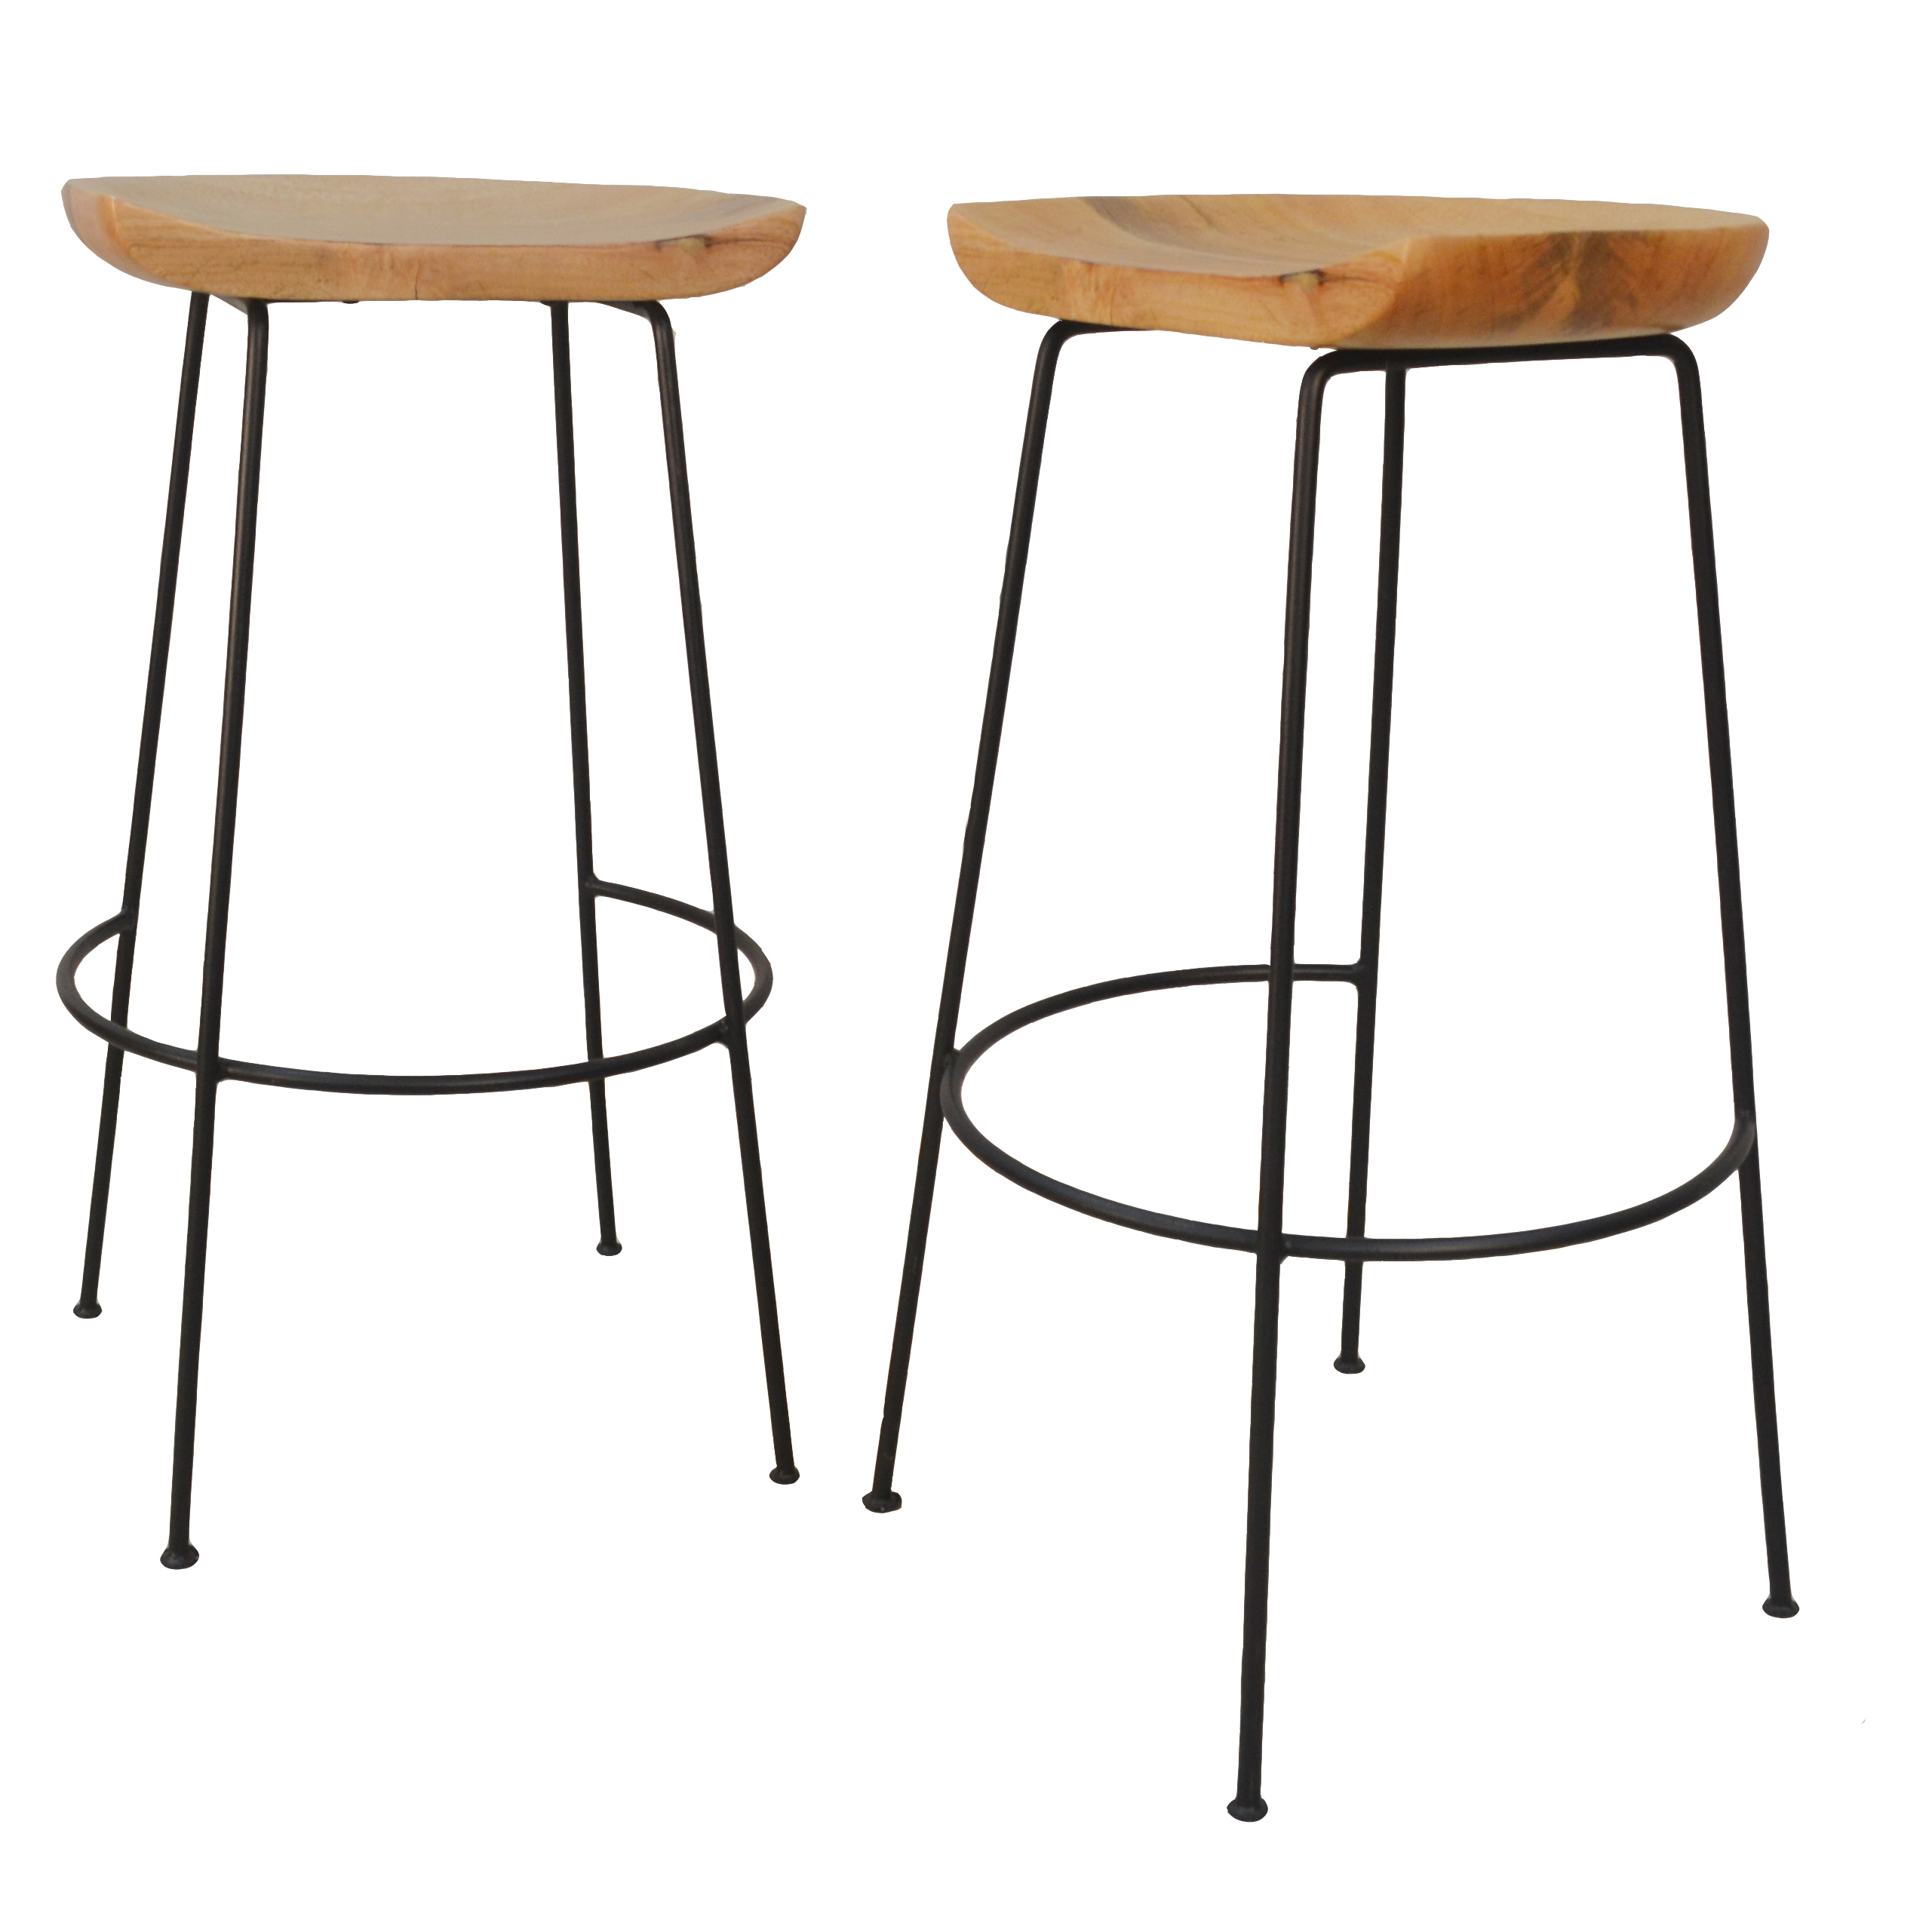 "Diya 30"" Bar Stool Set of 2, Natural/Black"